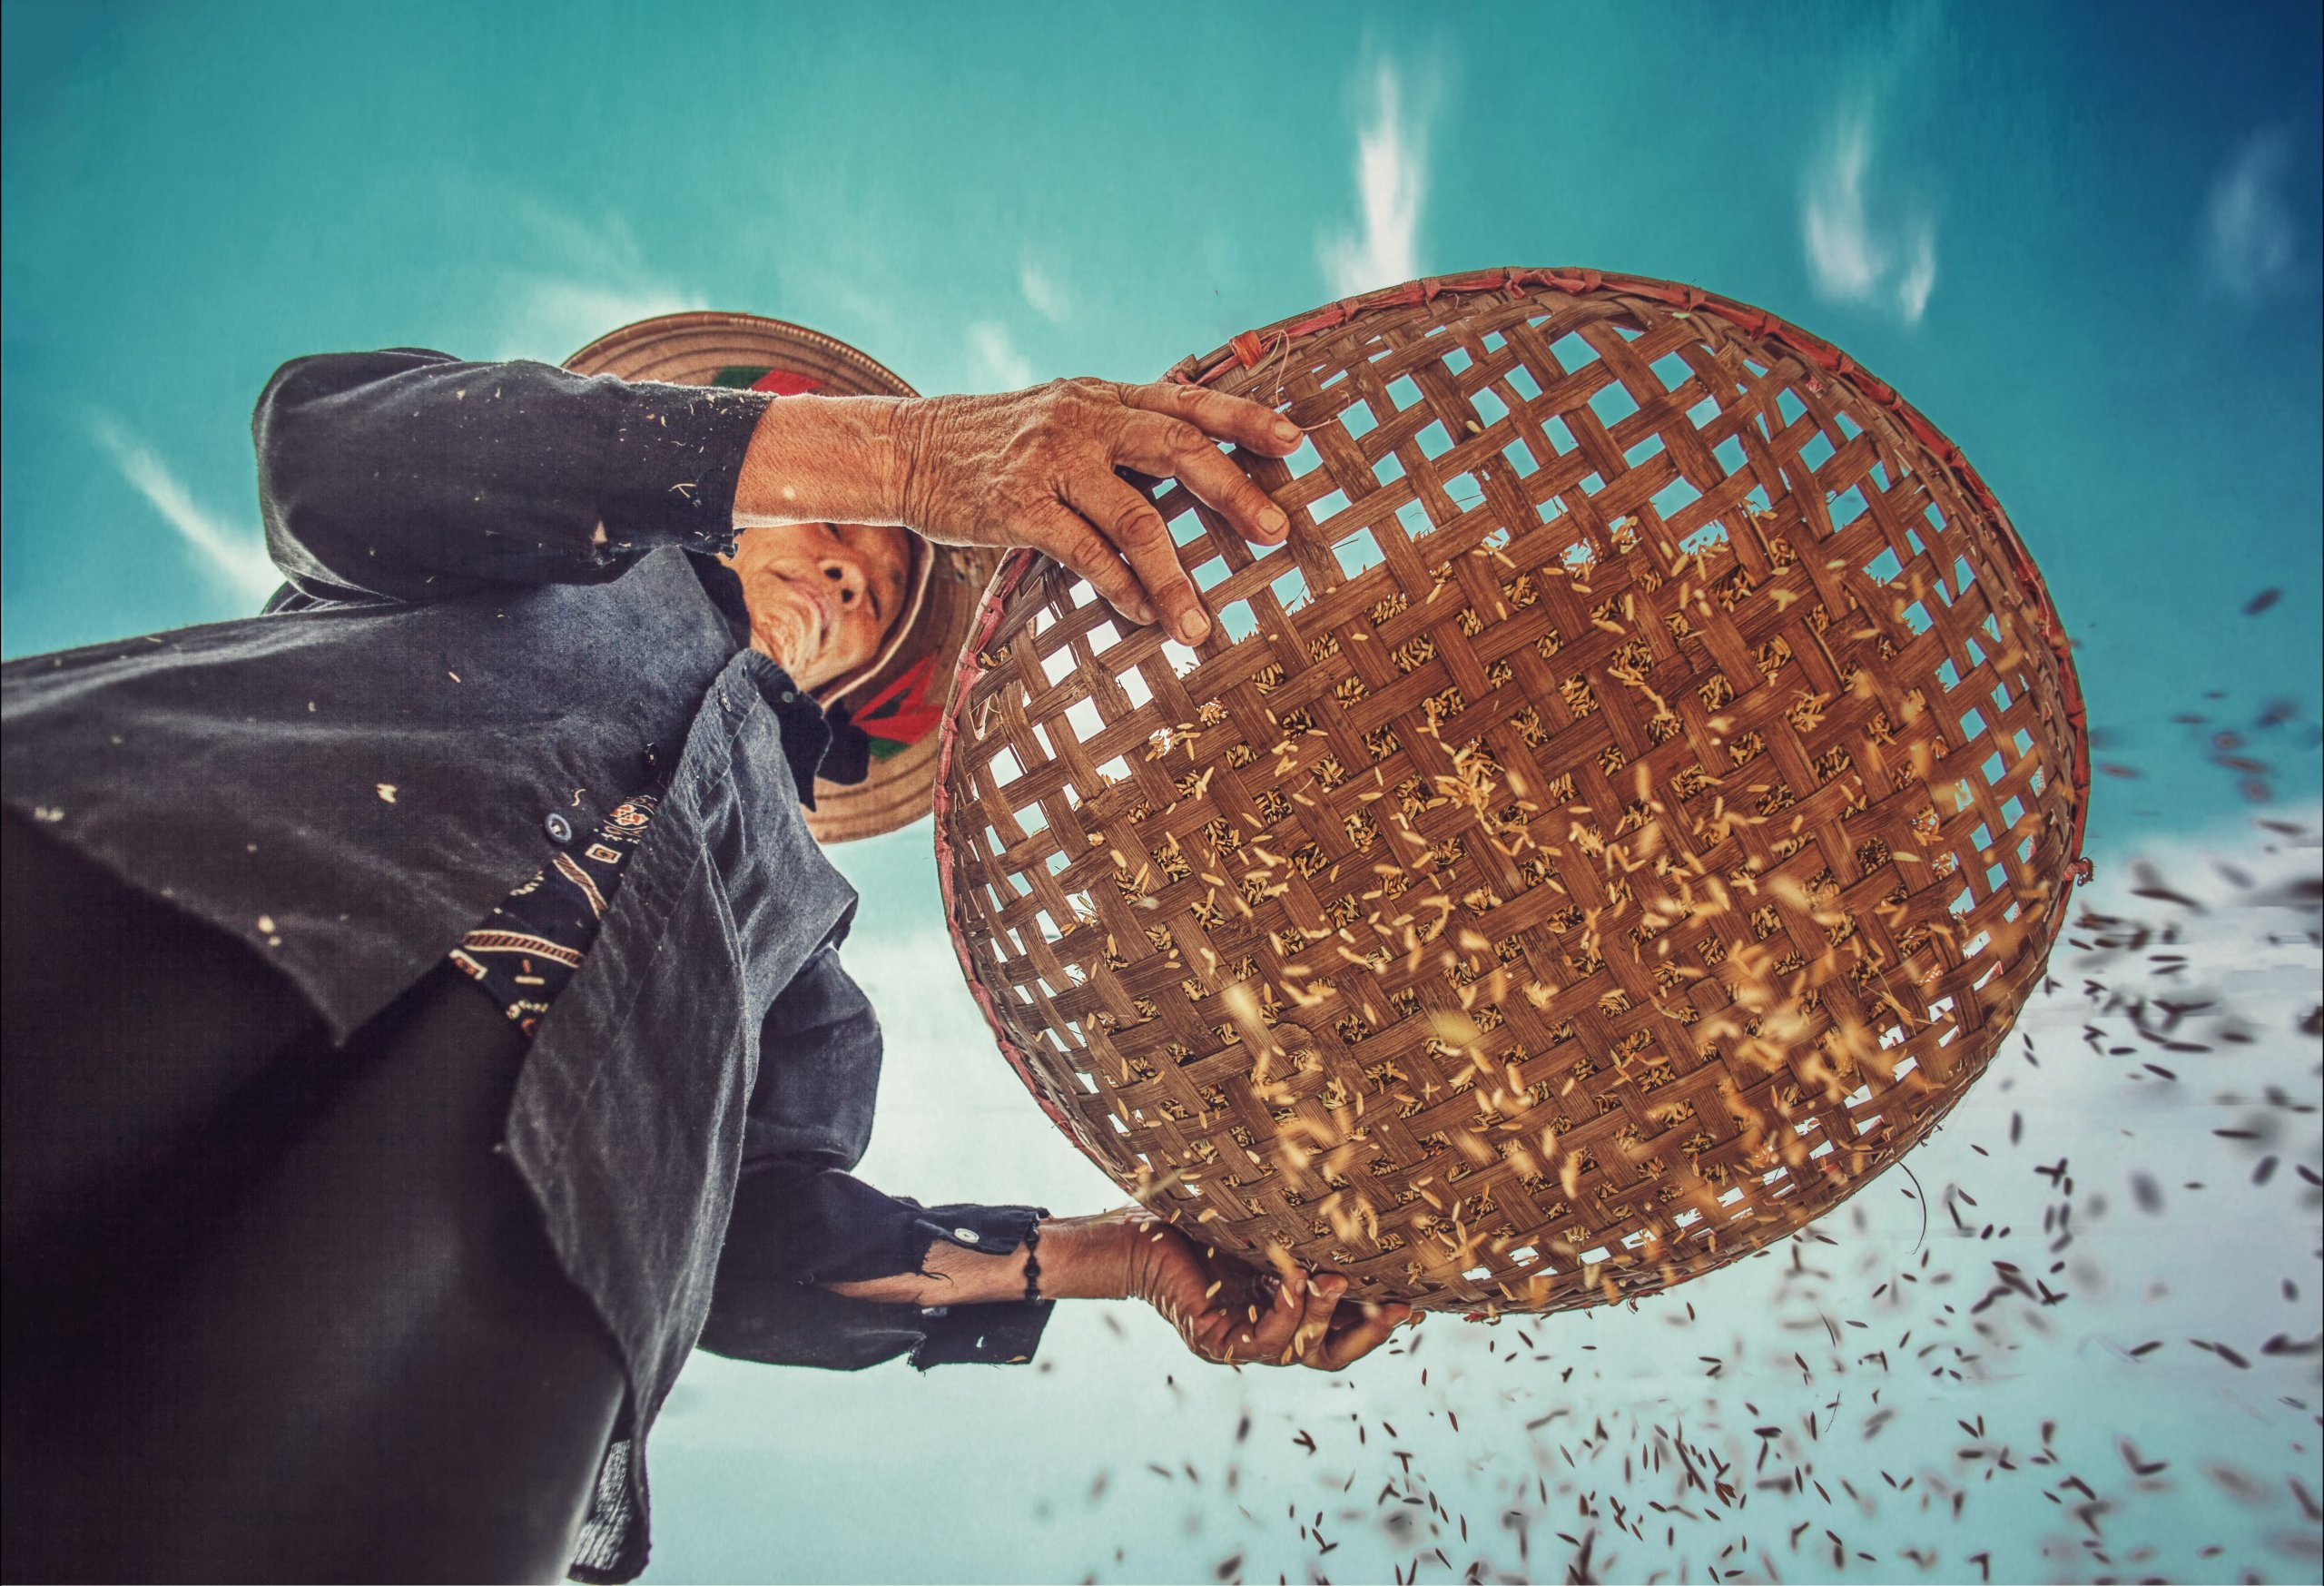 shot from below, showing a person sifting rice